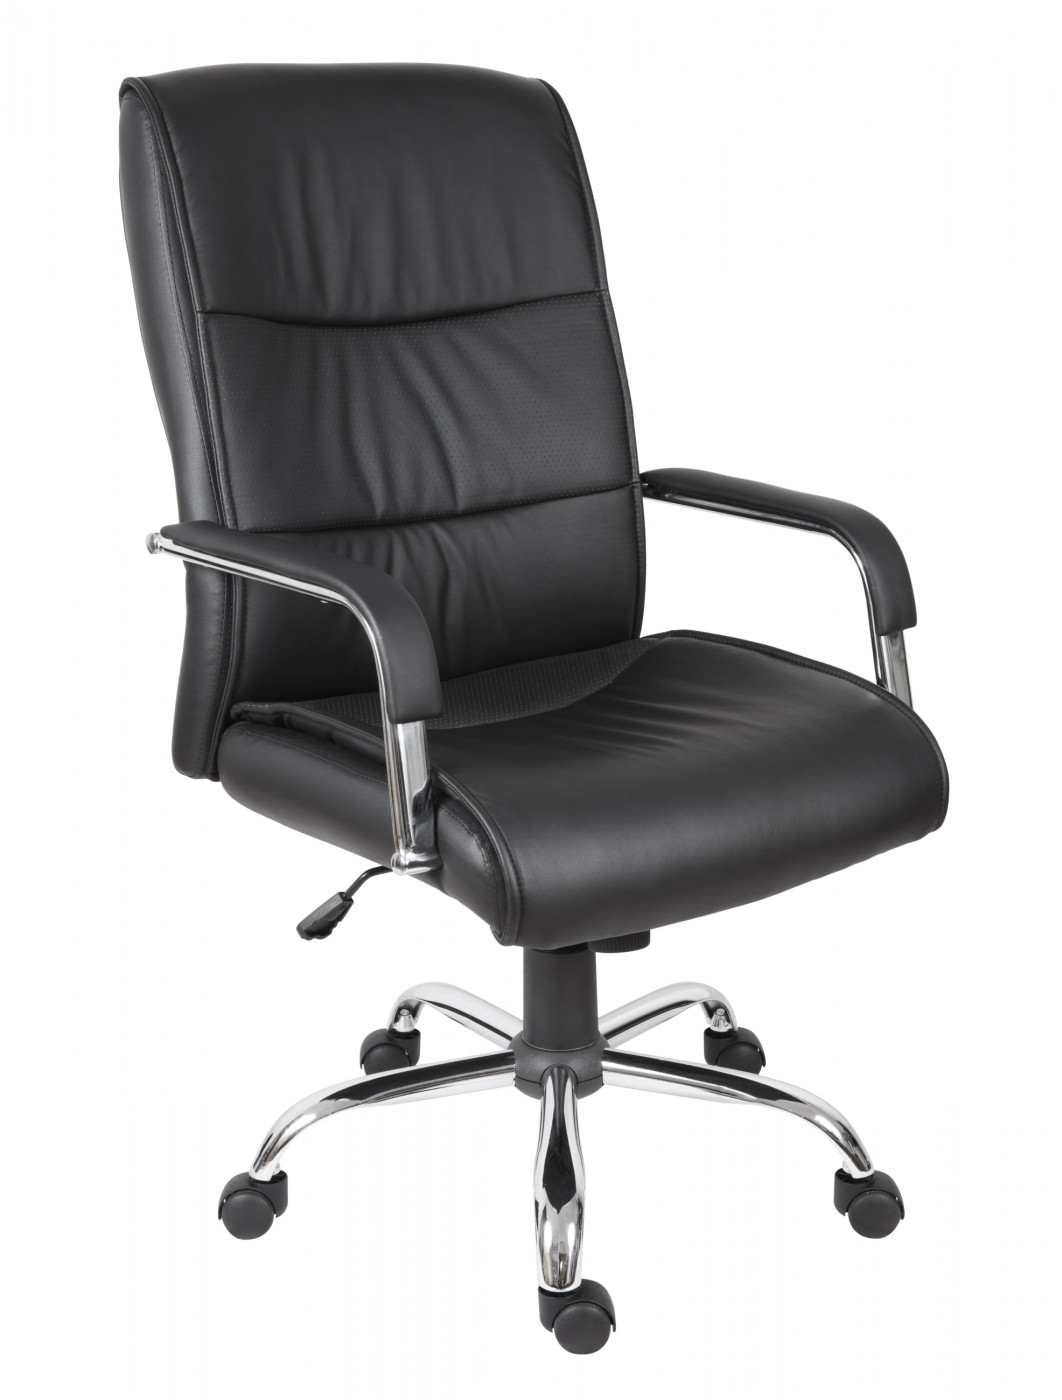 luxury office chairs uk bubble chair with stand 6901 121 furniture